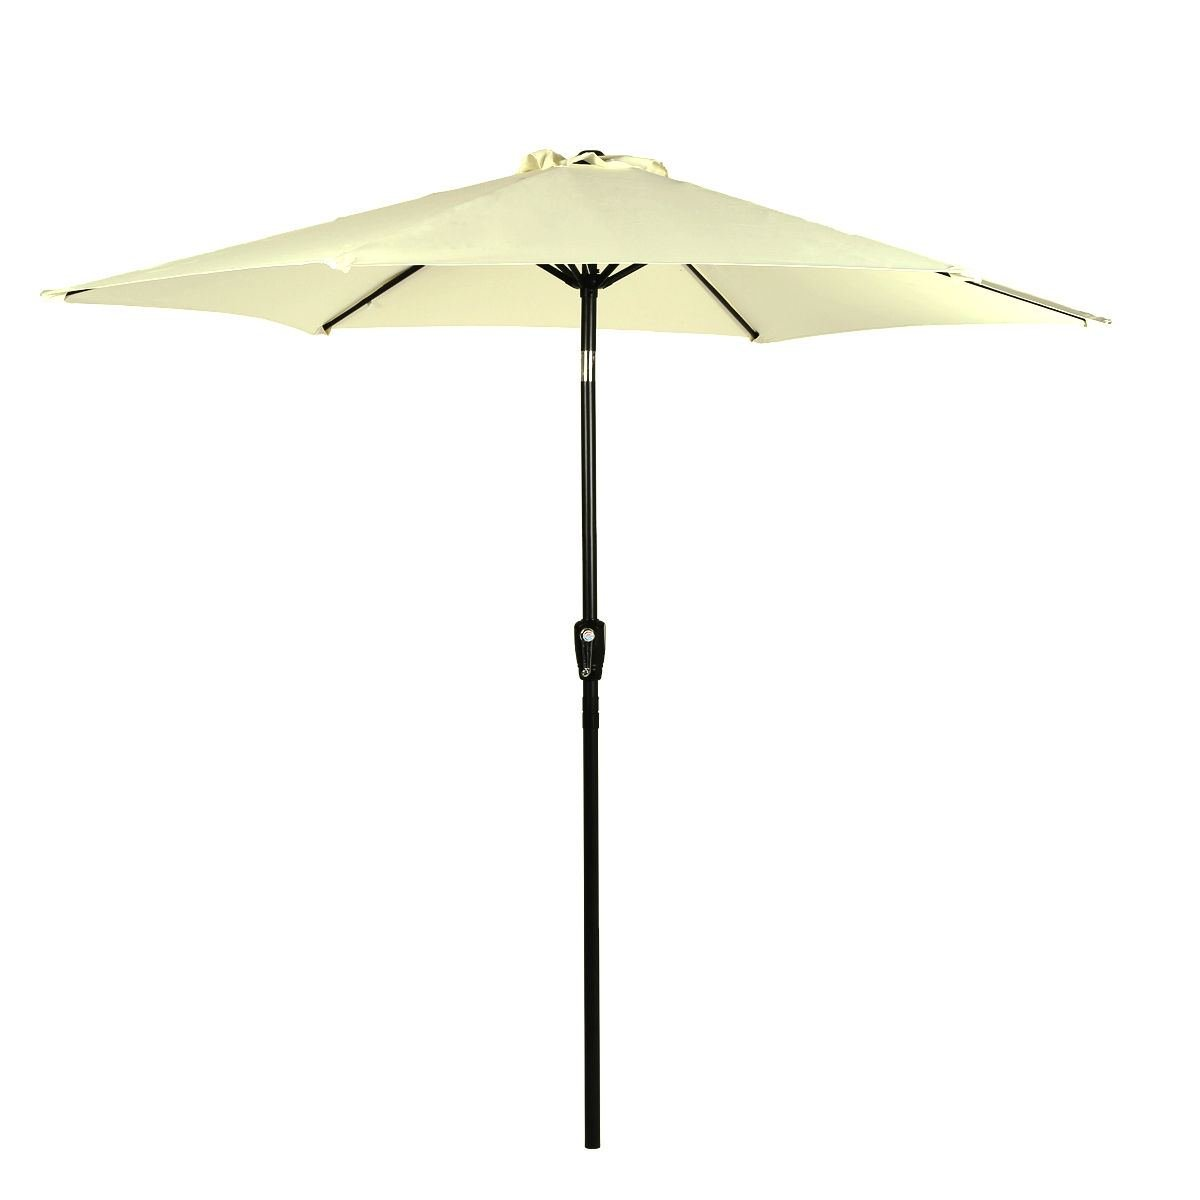 9 Feet 6 Rids Aluminum Outdoor Market Yard Beach Patio Umbrella Light weight 180D polyester and UV protection w/ Crank 276-Beige color by STARWORLD